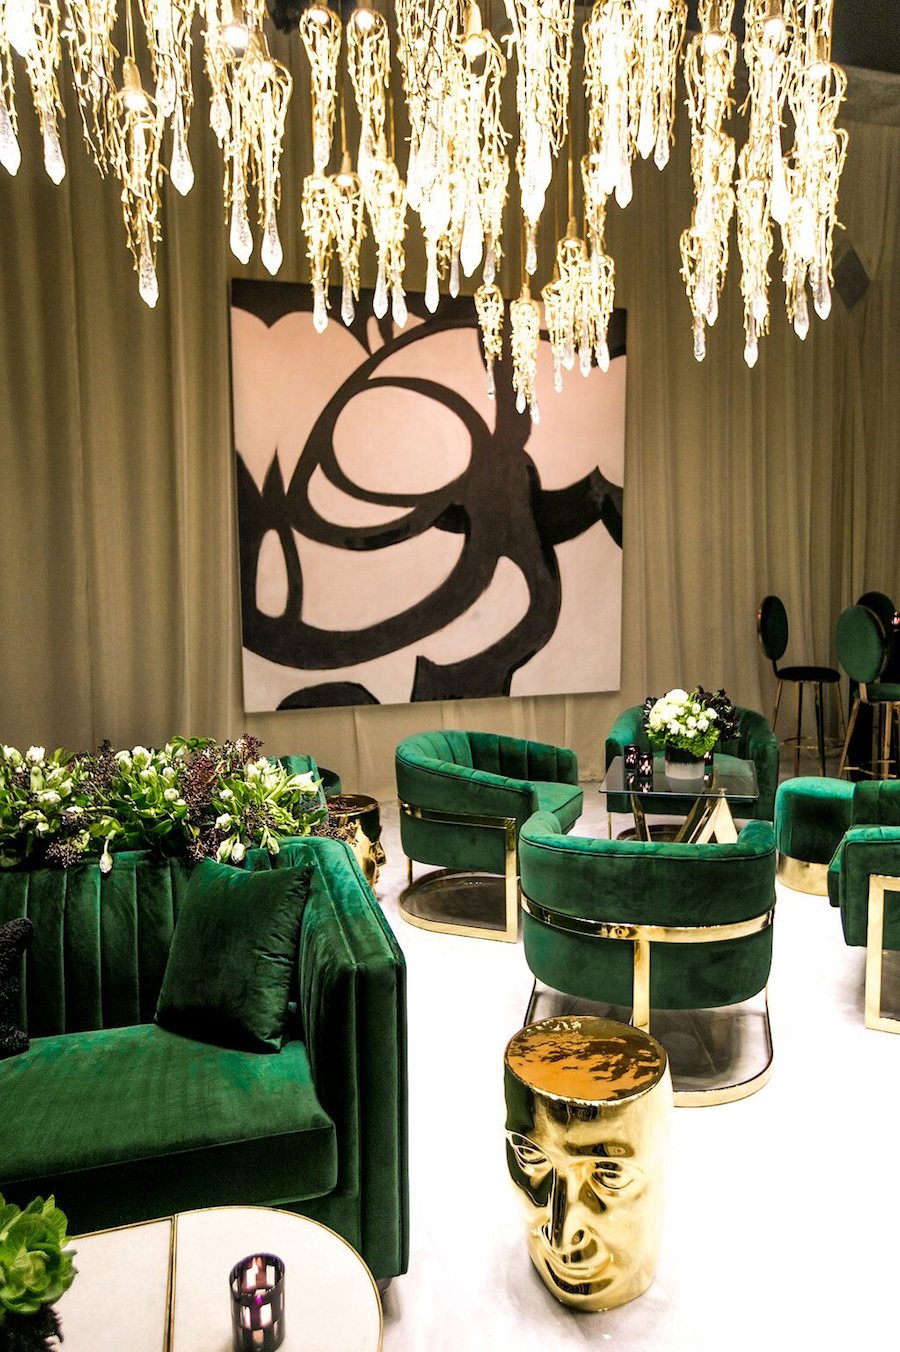 revelry event designers, anniversary party, sonia sharma events, katie beverly, celios design